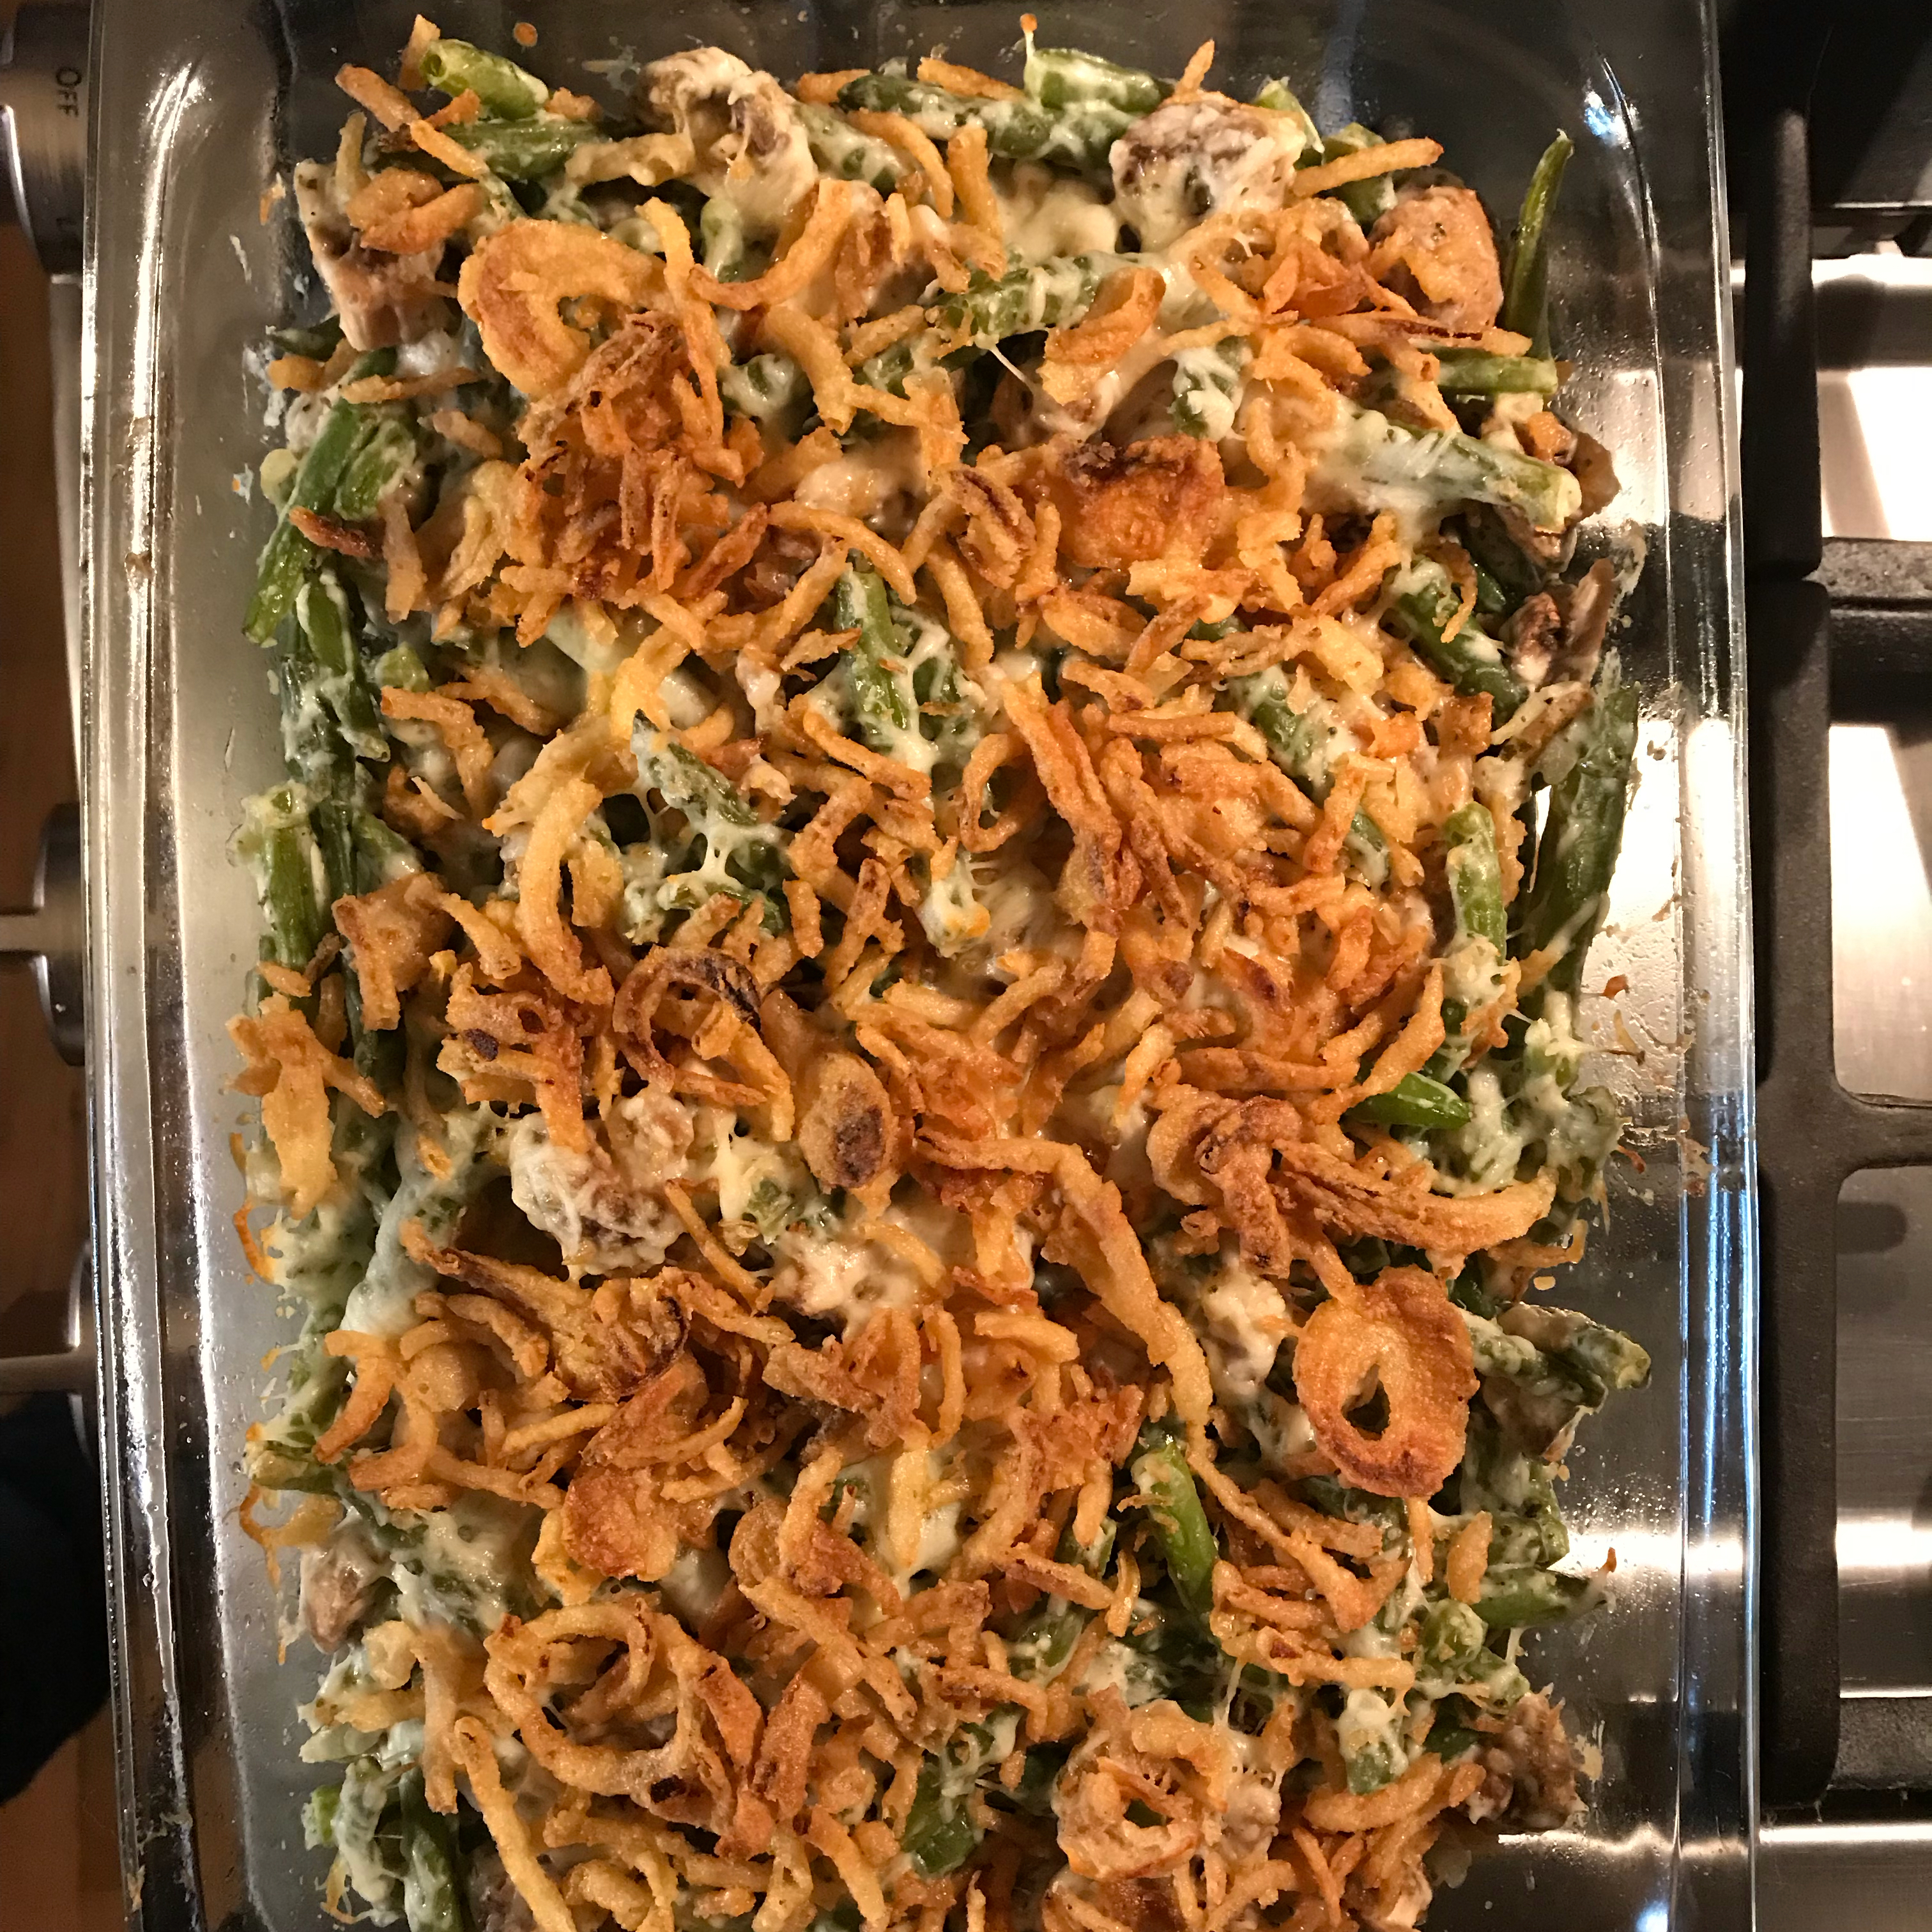 Absolutely Delicious Green Bean Casserole from Scratch Patty Curcio